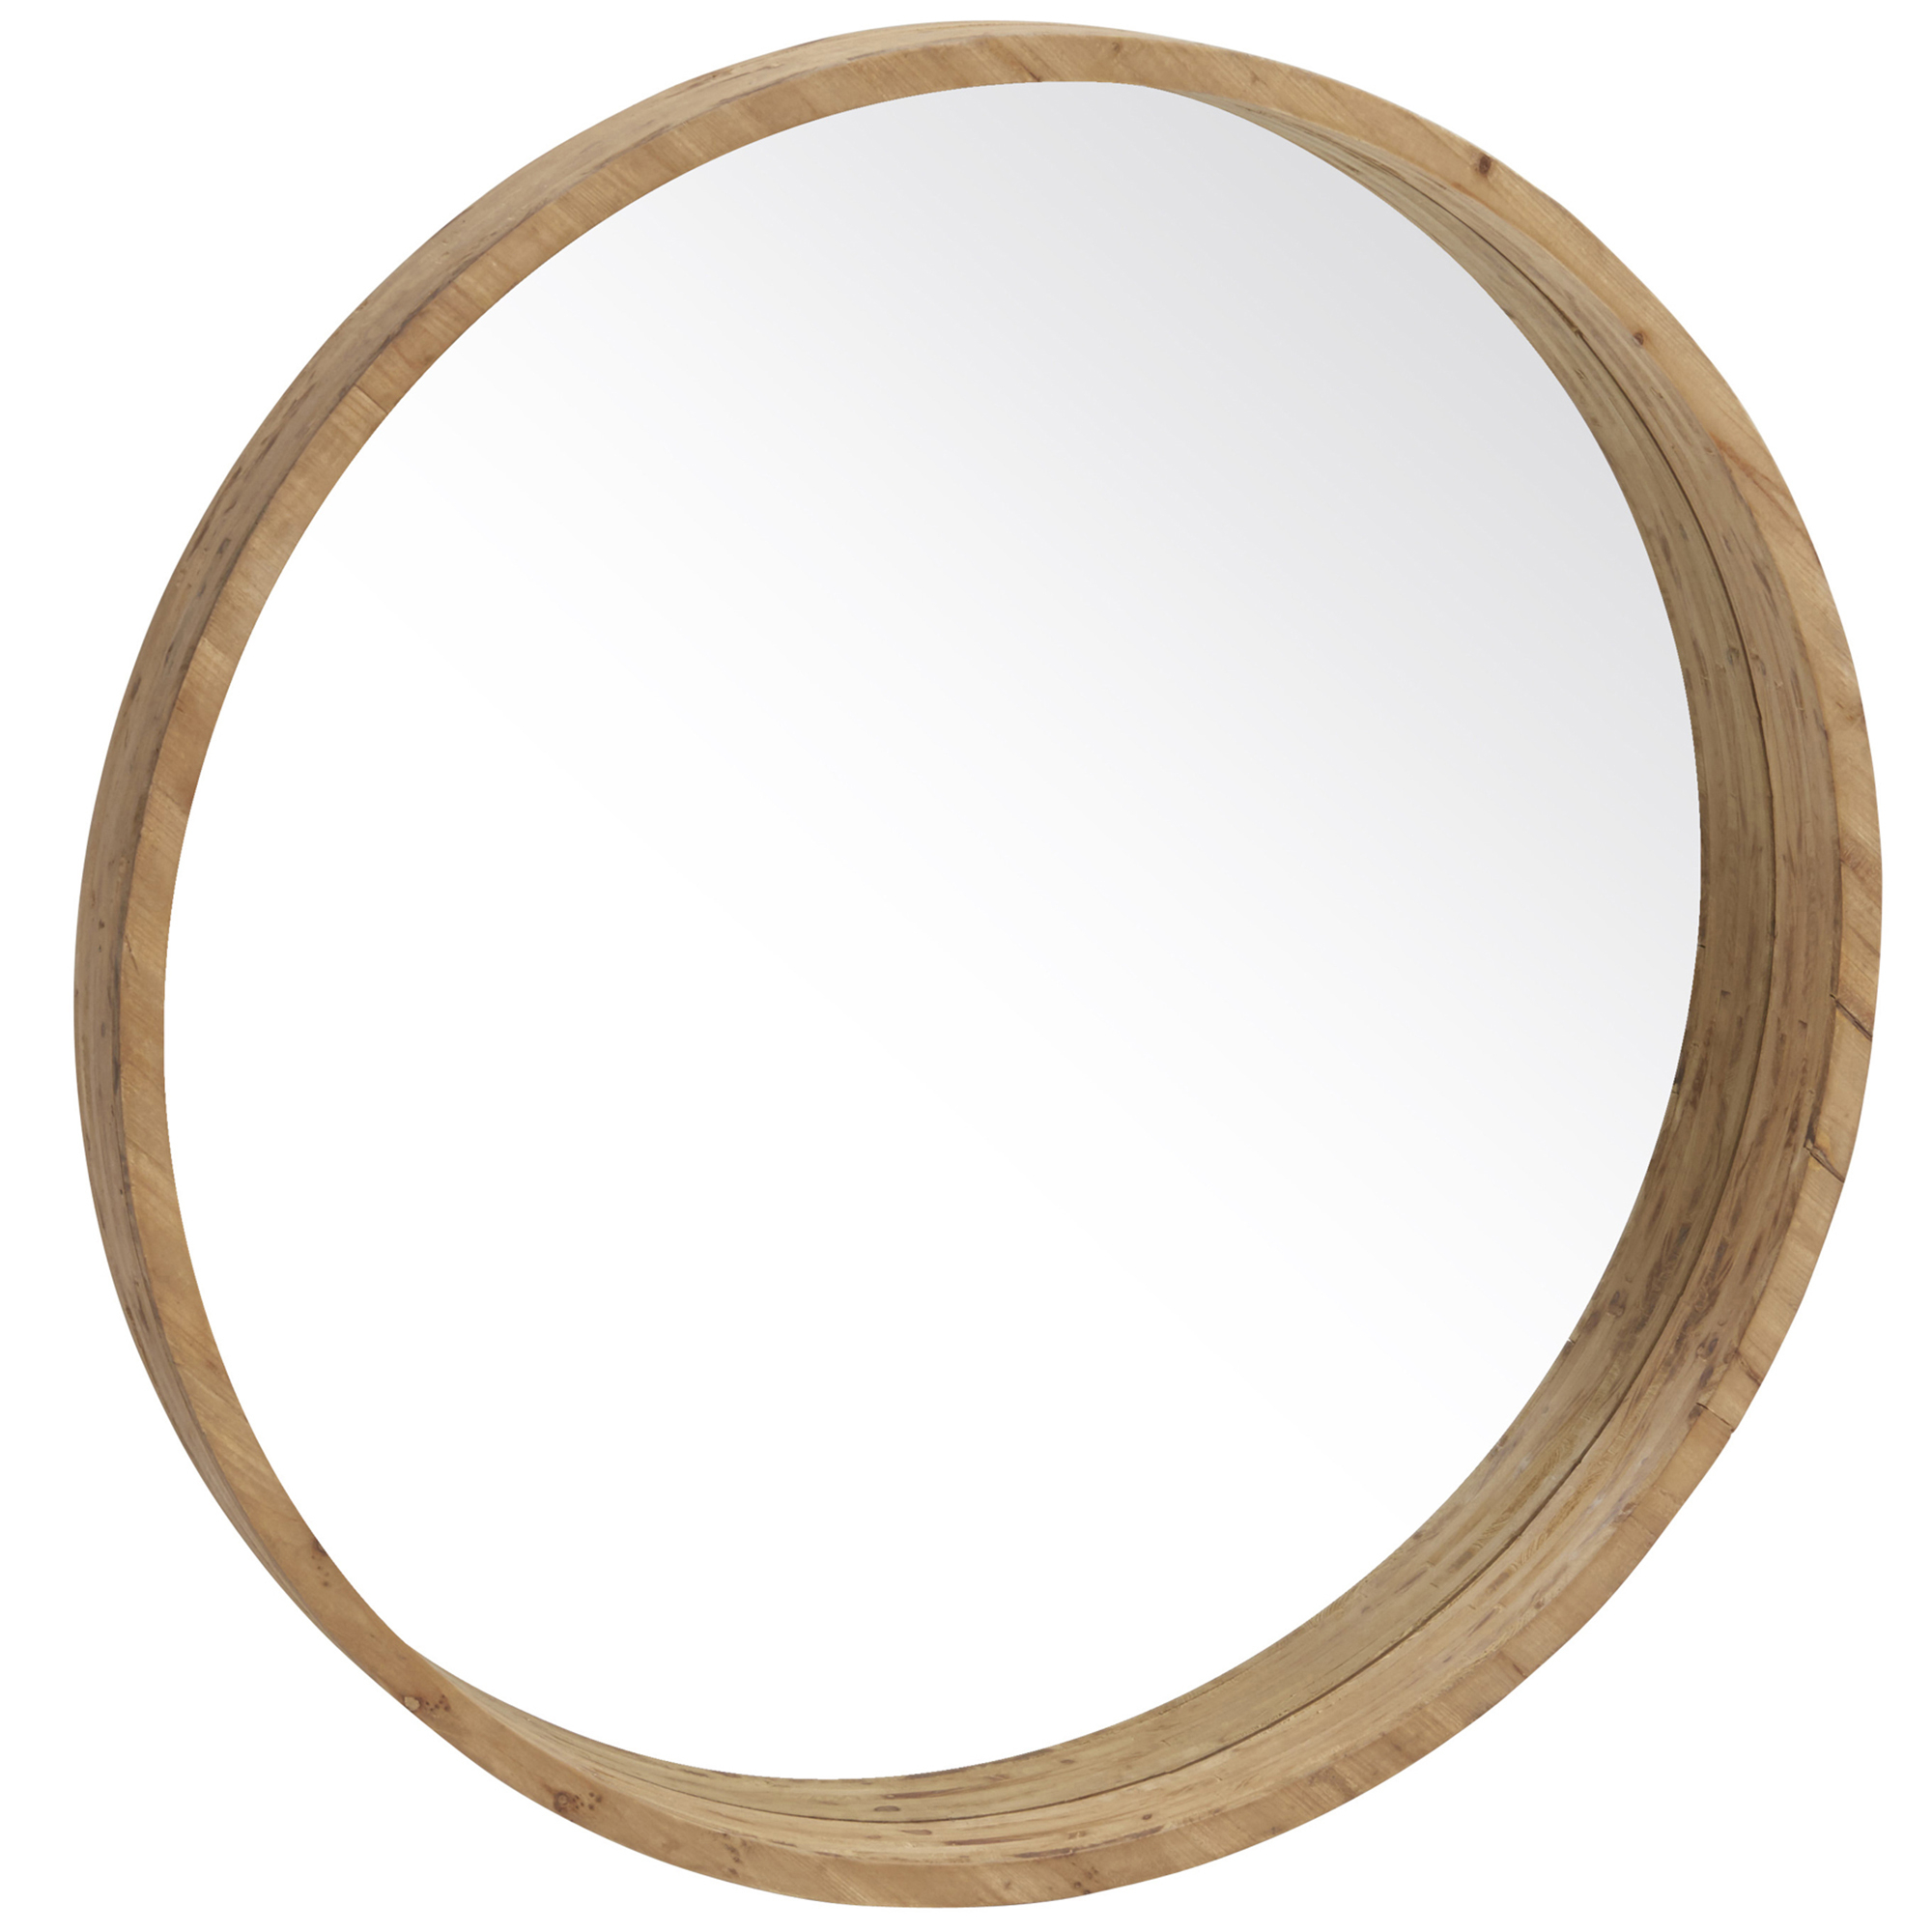 Colton Round Wooden Mirror Regarding Colton Modern & Contemporary Wall Mirrors (Photo 10 of 20)